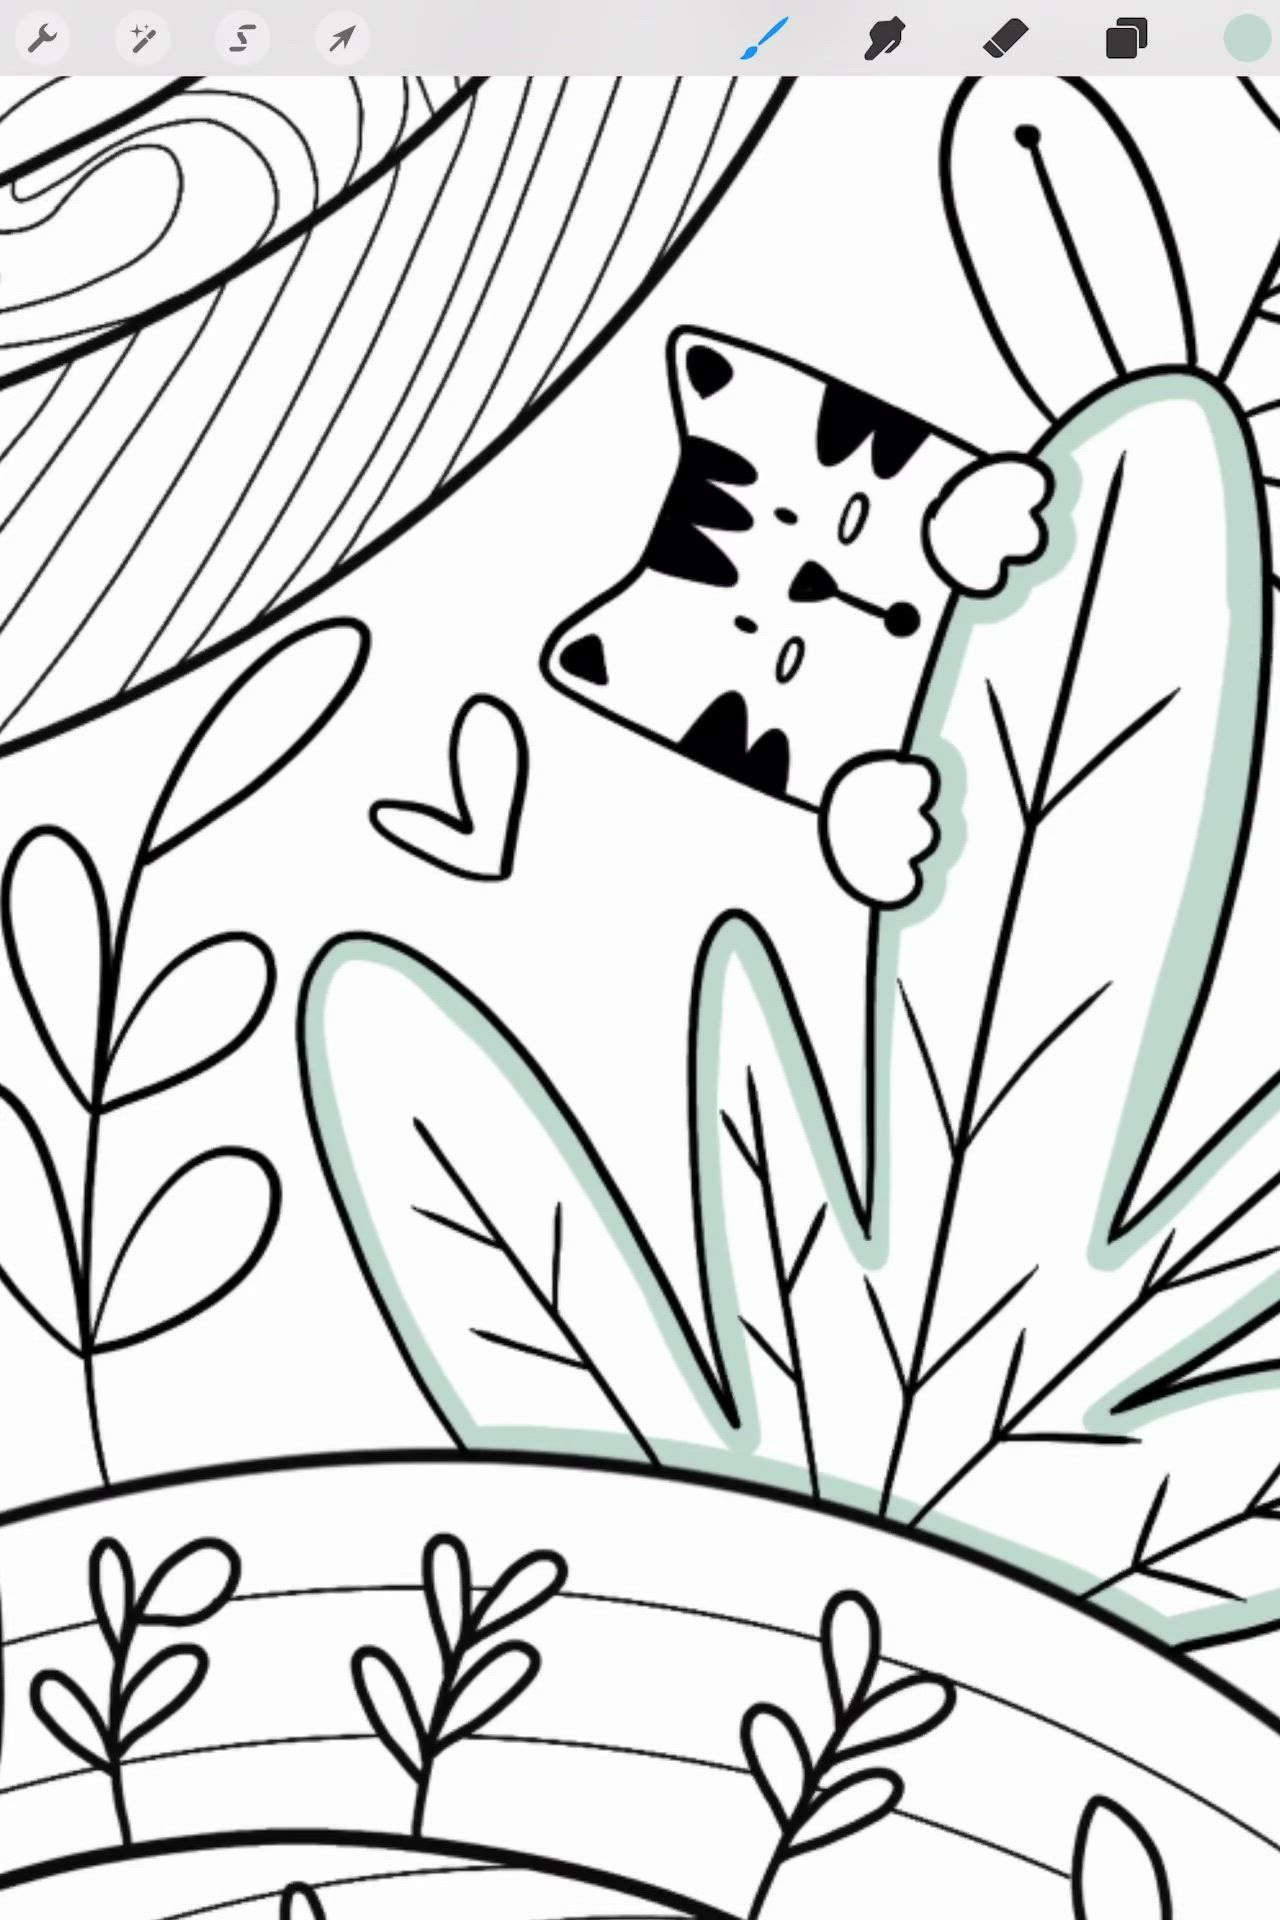 Buds Are Blooming To Welcome New Year Coloring Pages Download Free Buds Are Blooming To Welcome New Y New Year Coloring Pages Coloring Pages Welcome New Year